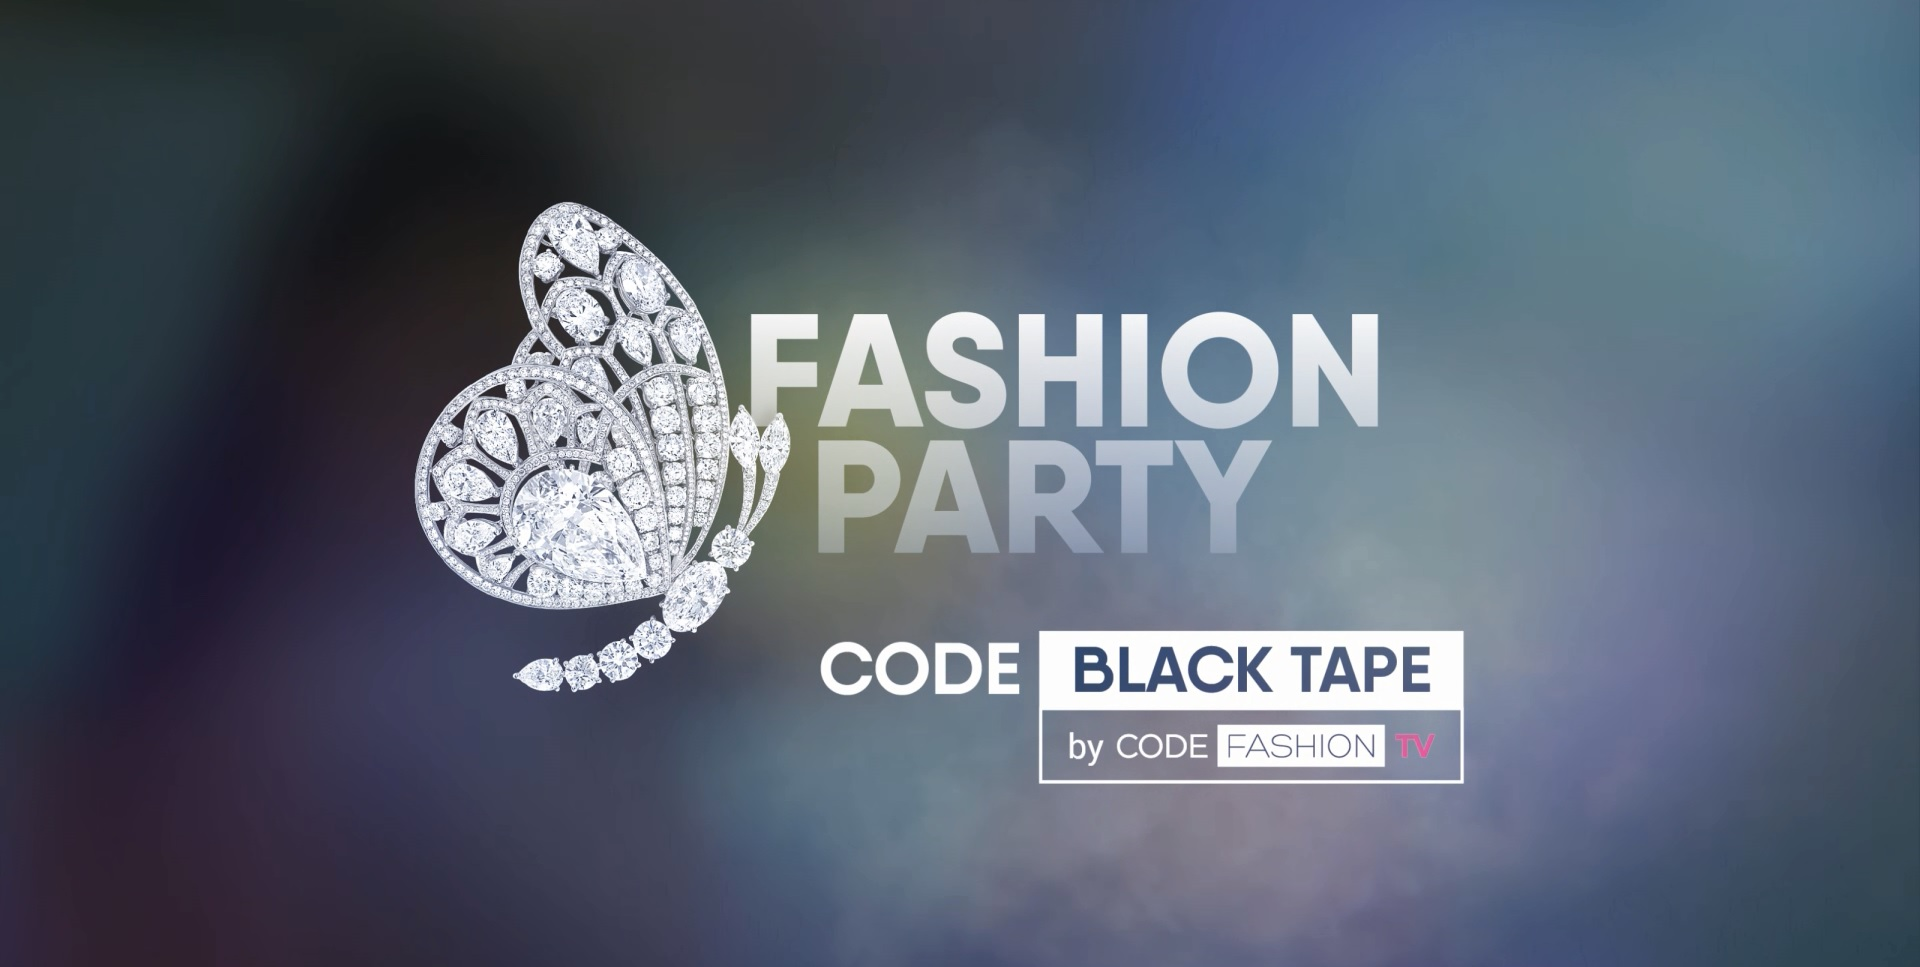 Fashion Party - Code Black Tape | Promo video